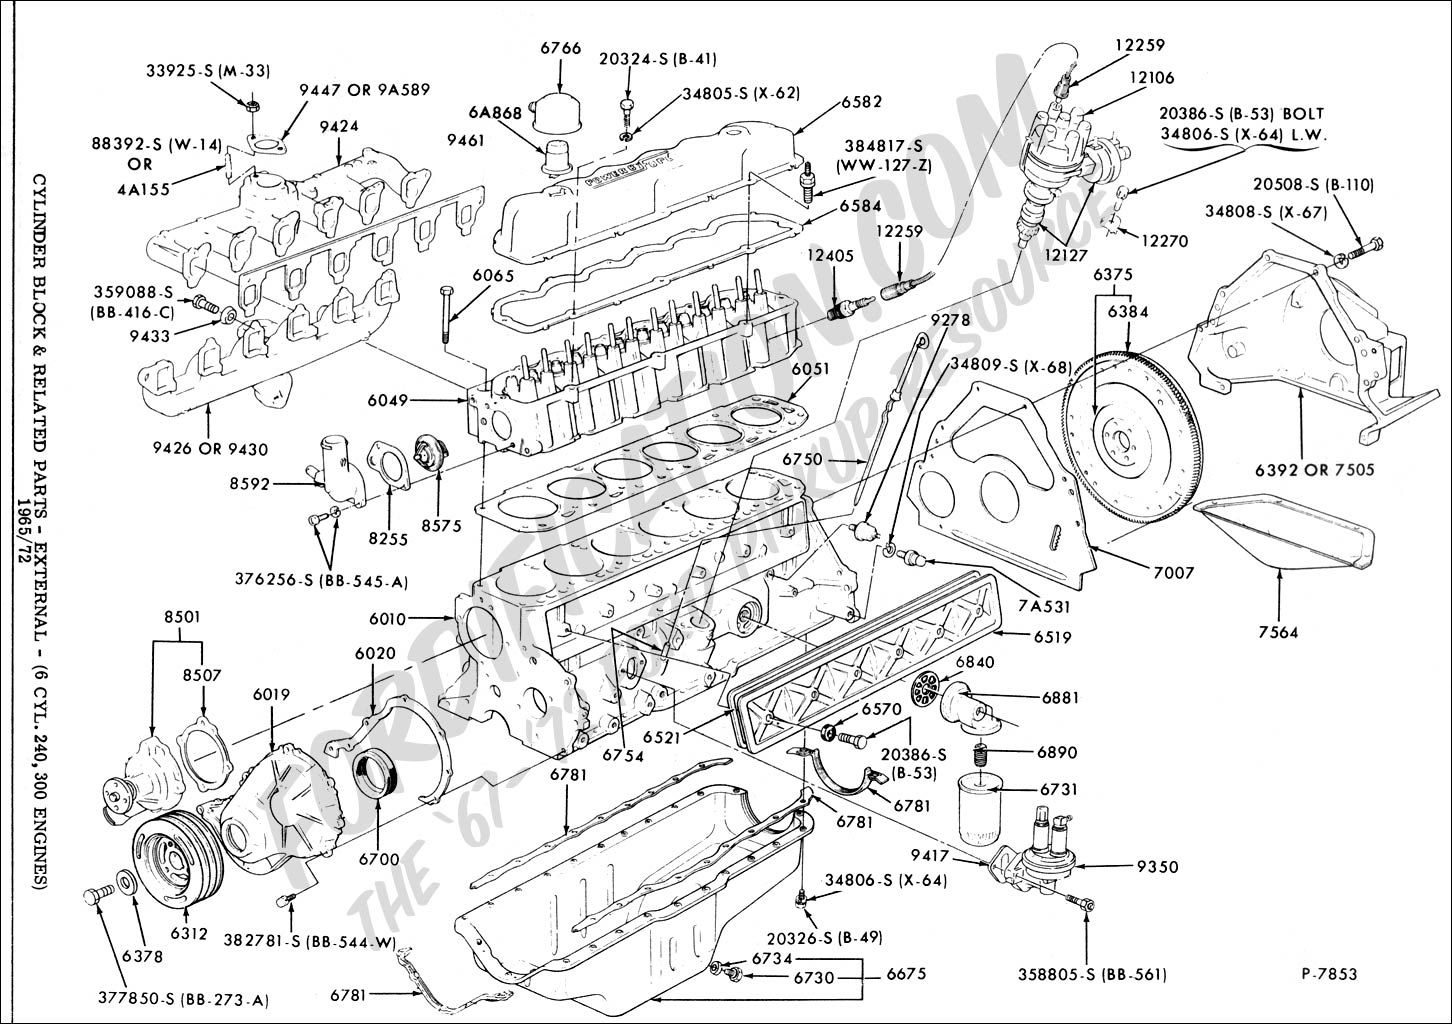 medium resolution of 1970 ford 302 engine diagram wiring diagram toolbox 2013 mustang gt parts diagram 1970 ford 302